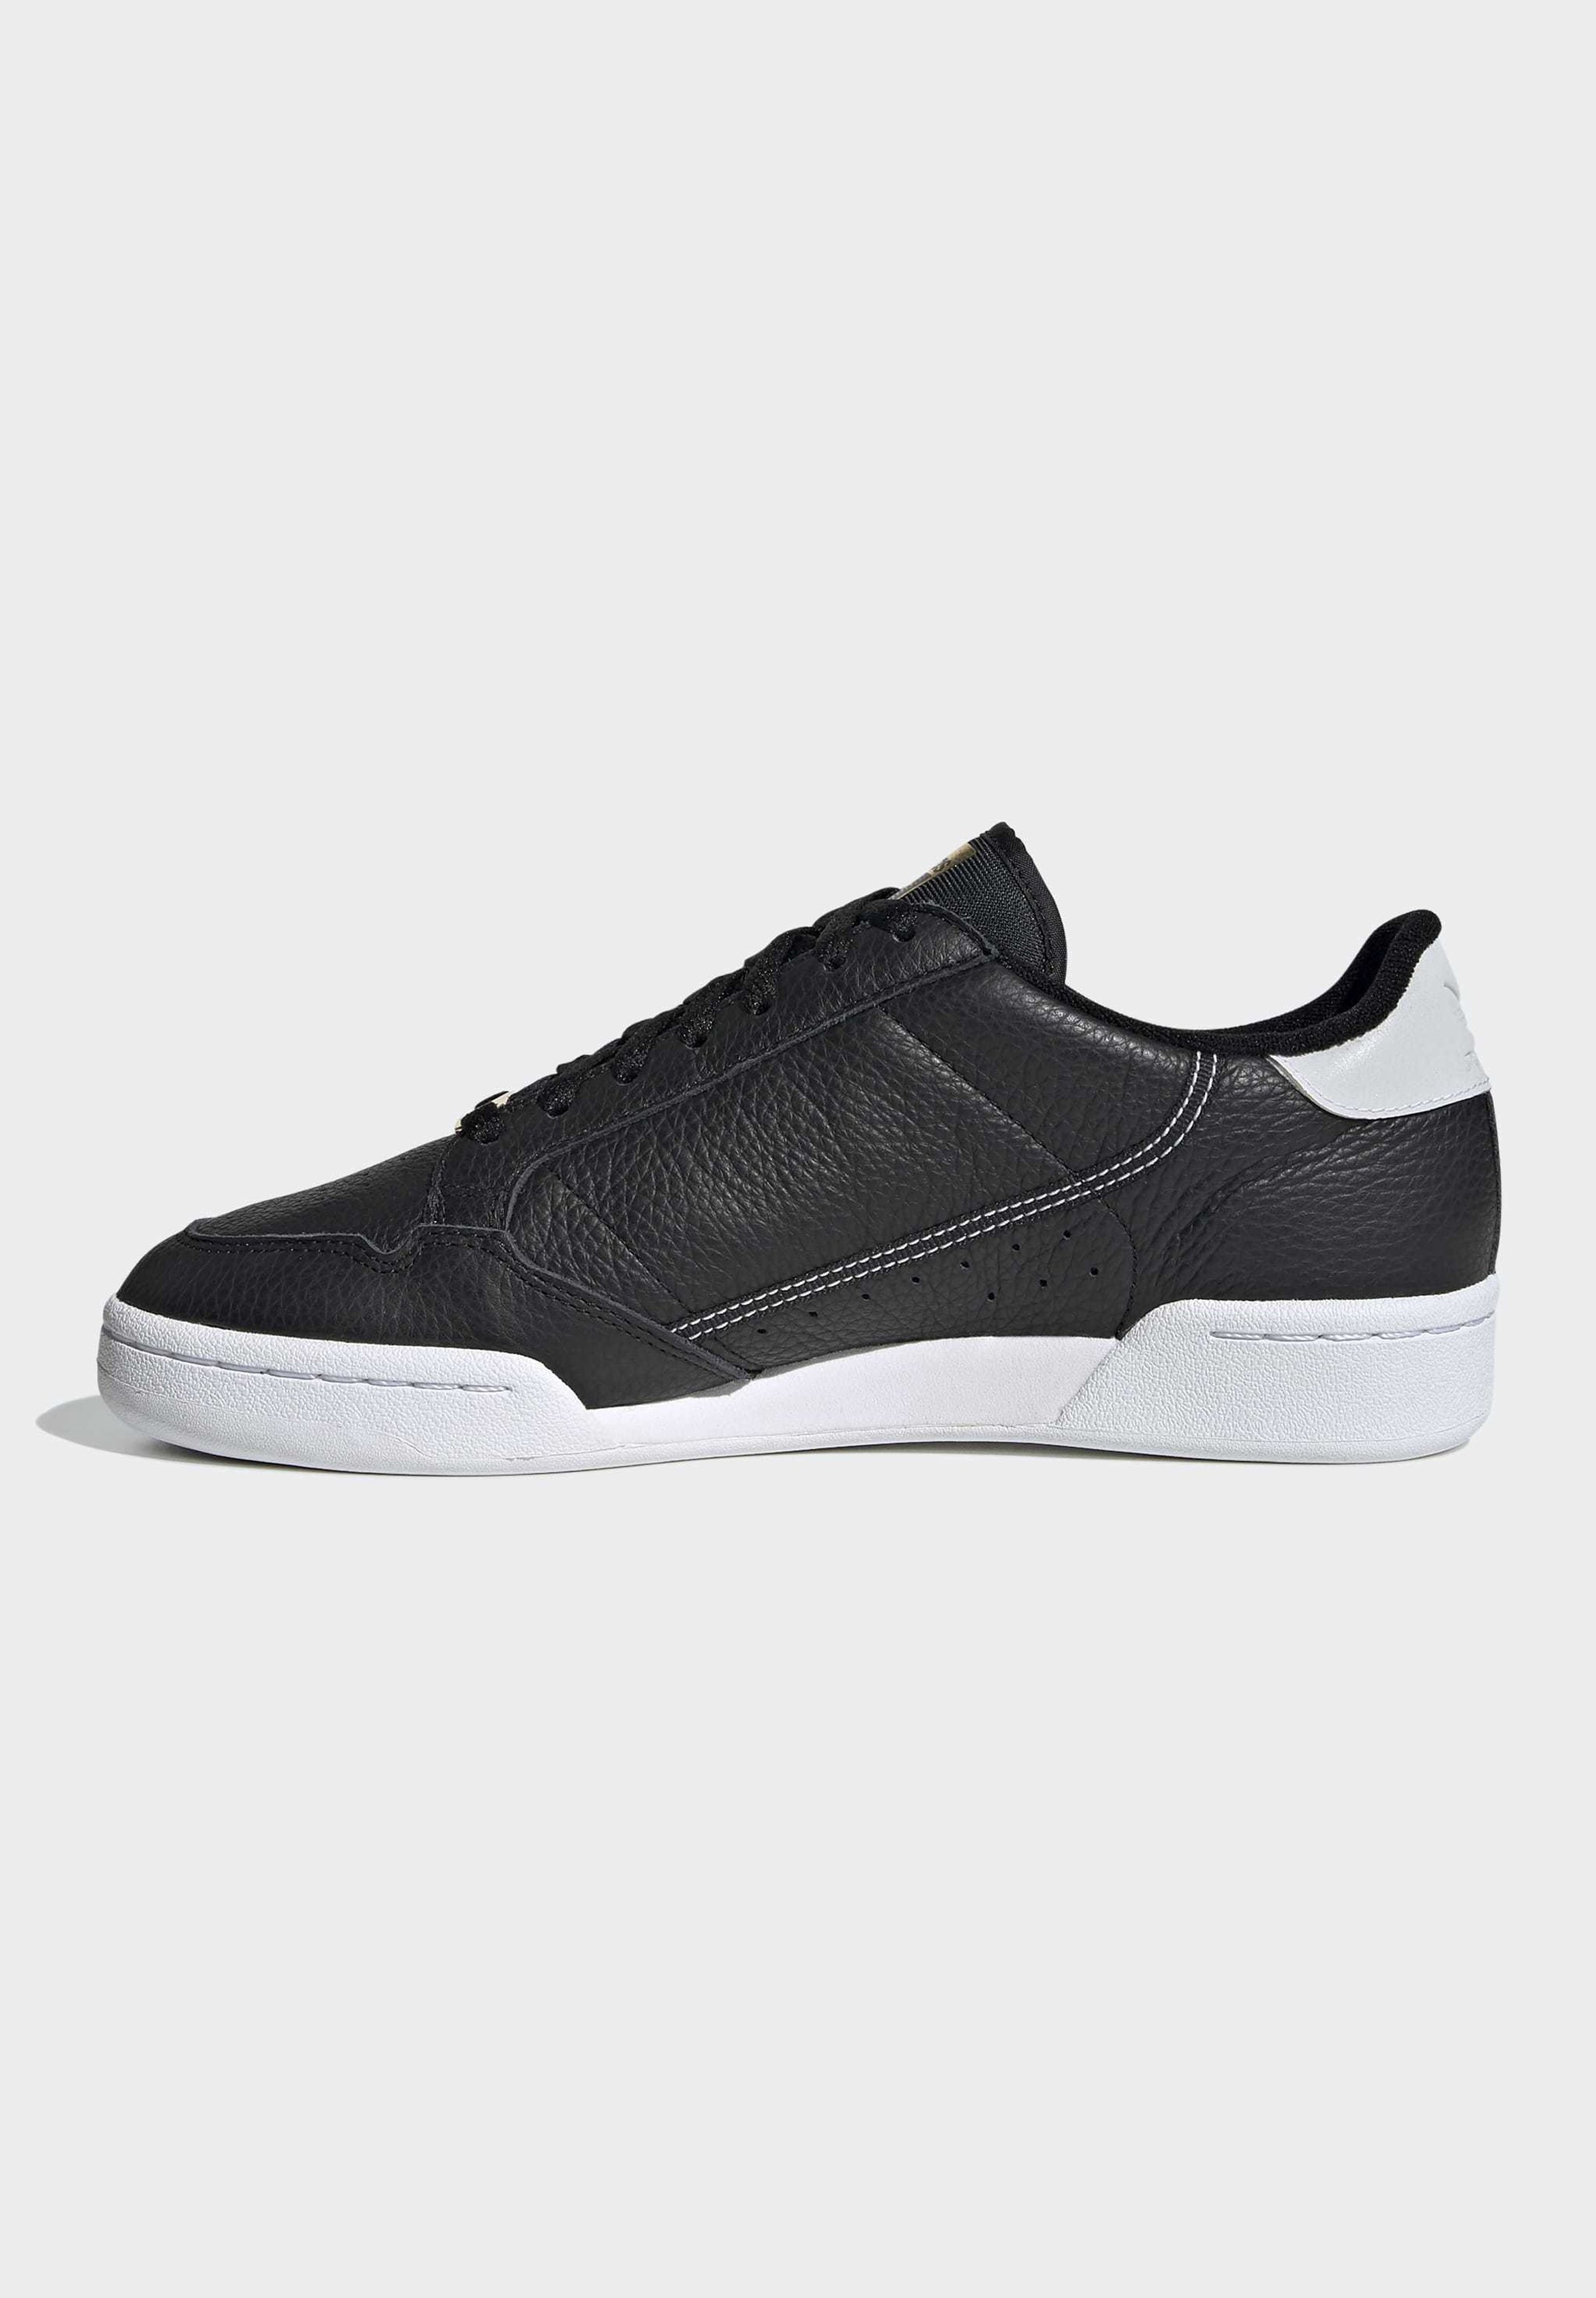 Adidas Originals Continental 80 Shoes - Sneakers Black